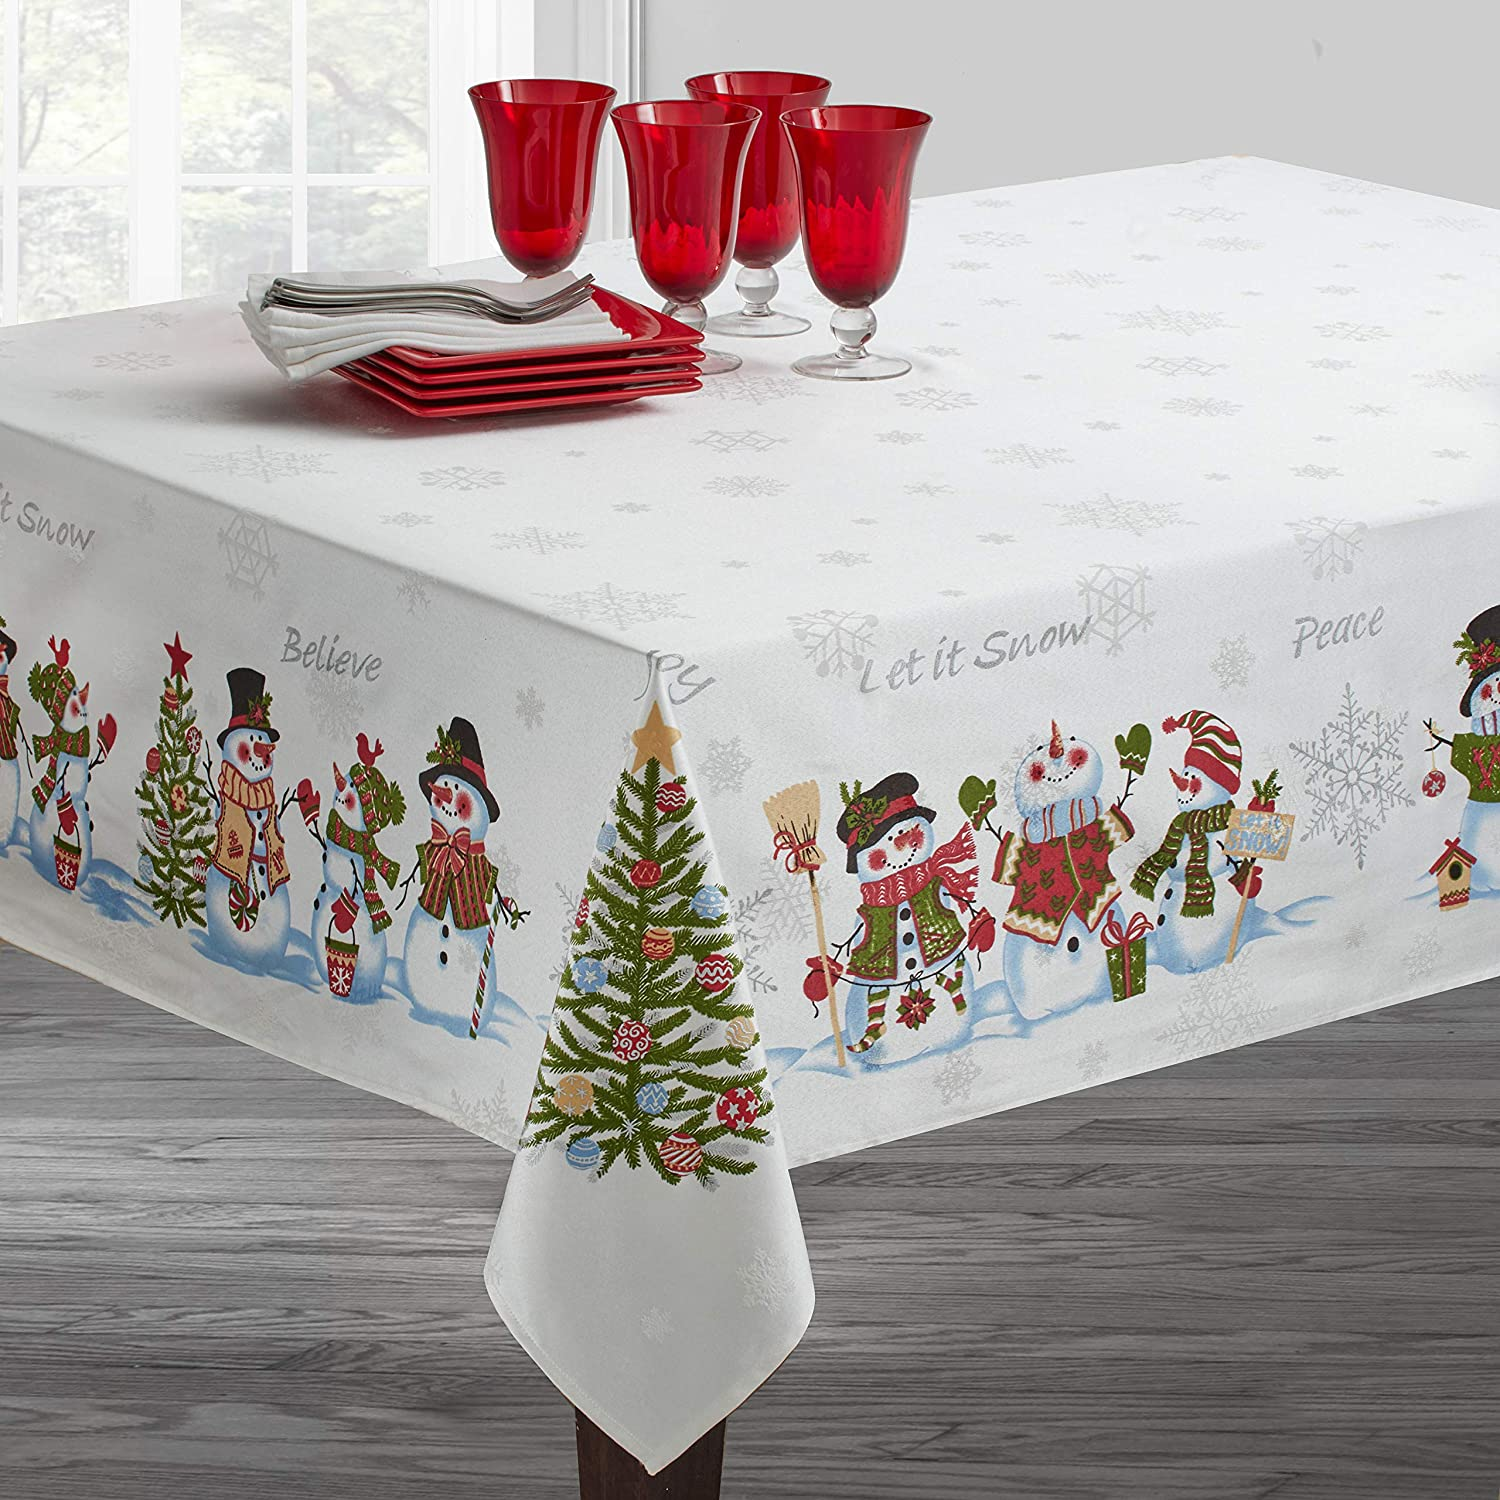 "Benson Mills Believe Snowman Engineered Printed Tablecloth for Winter and Christmas (60"" x 120"" Rectangular, Believe Snowman)"